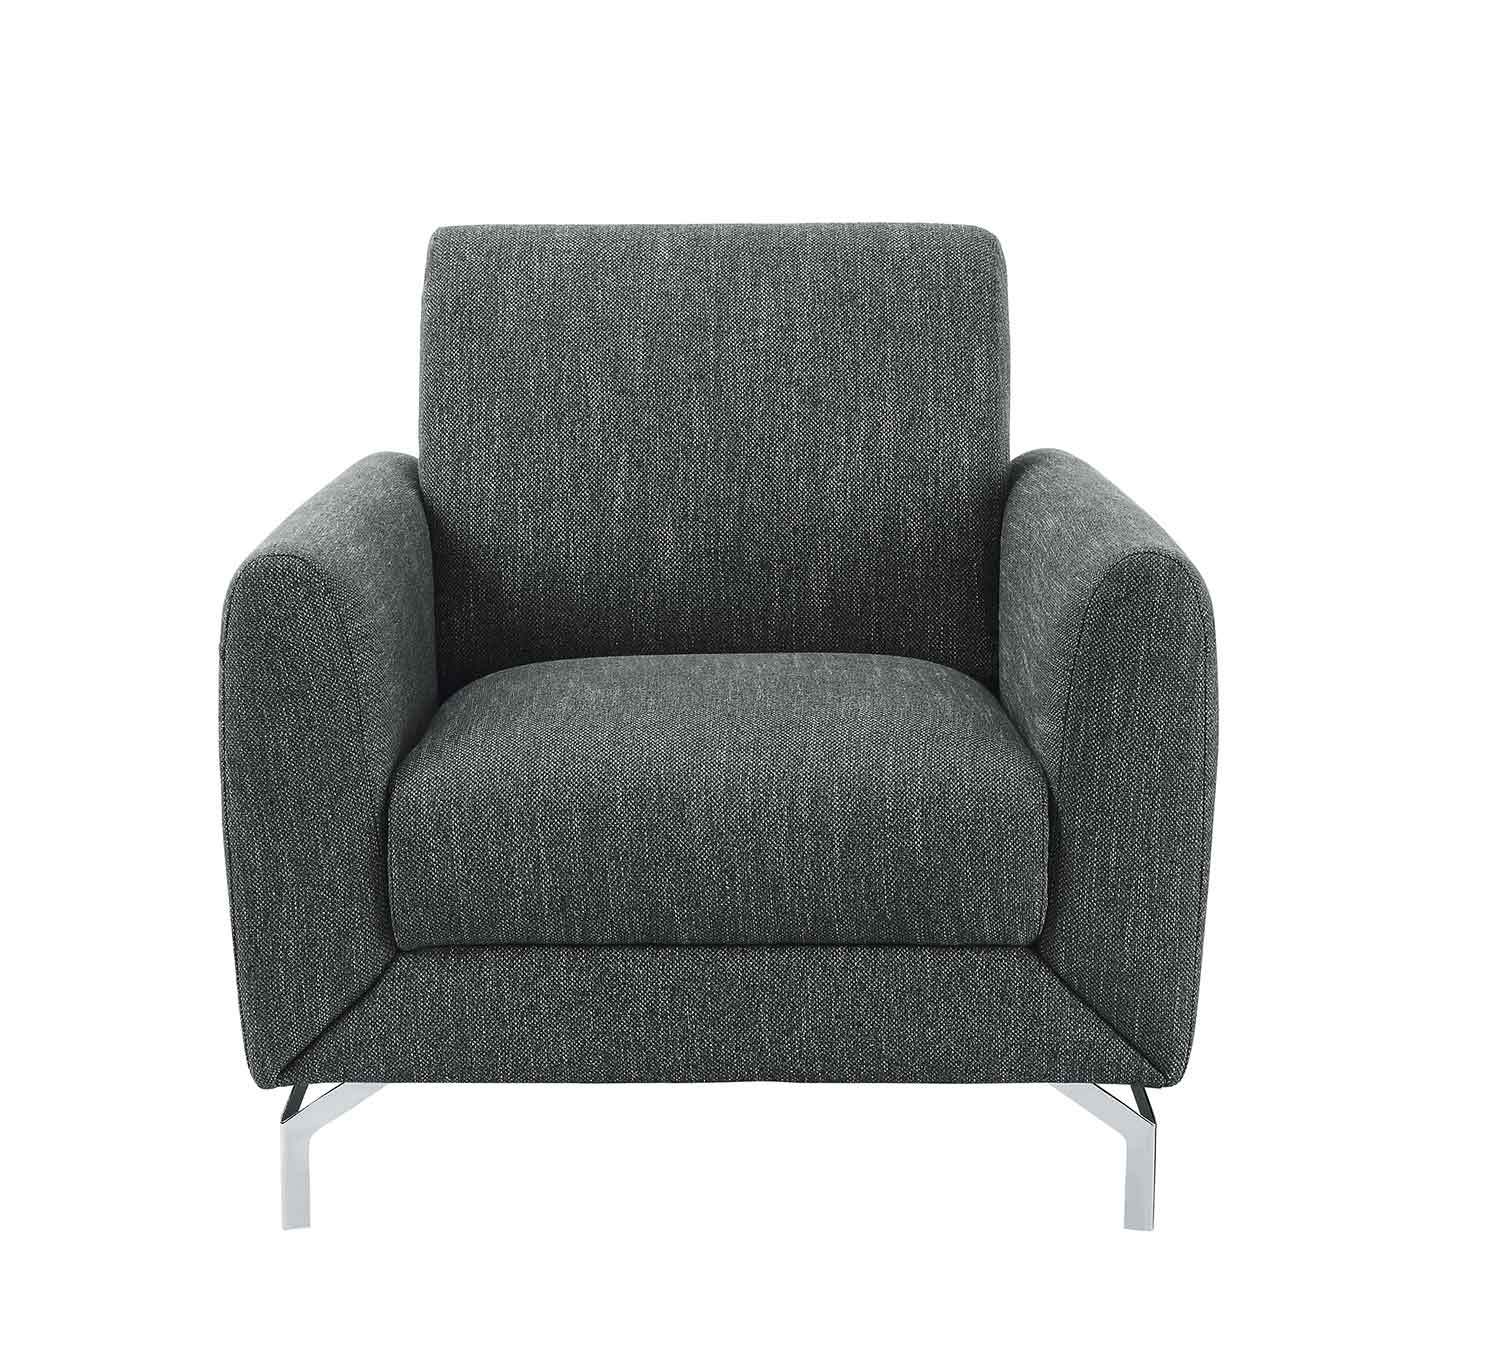 Homelegance Venture Chair - Dark gray